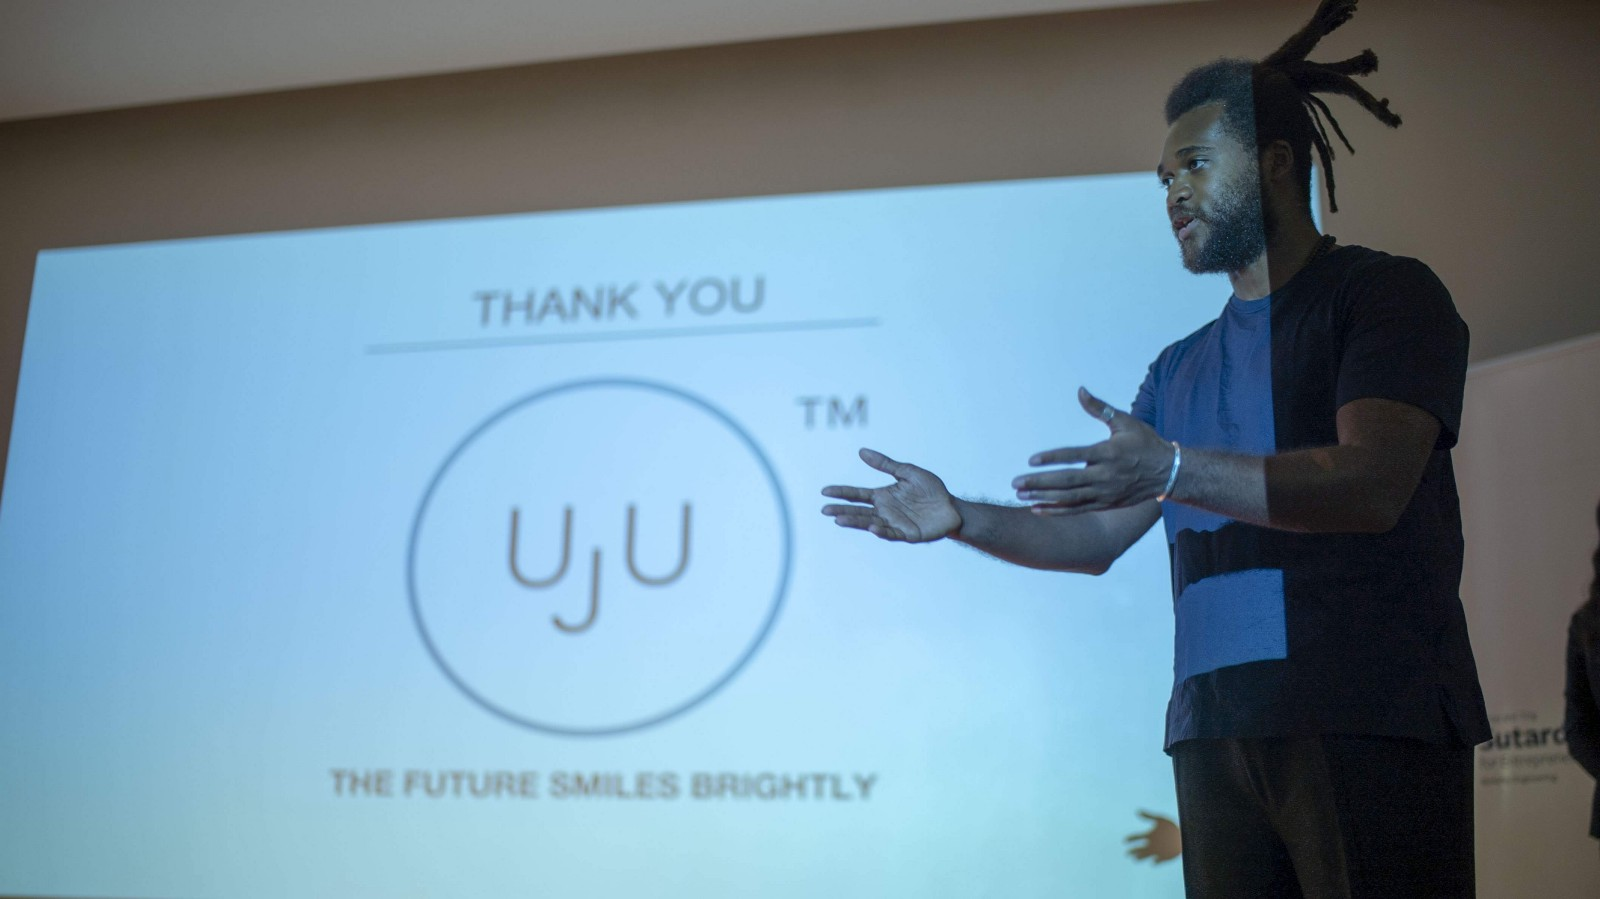 Jordan Coffey pitches UJU to the judges during the final pitch round.